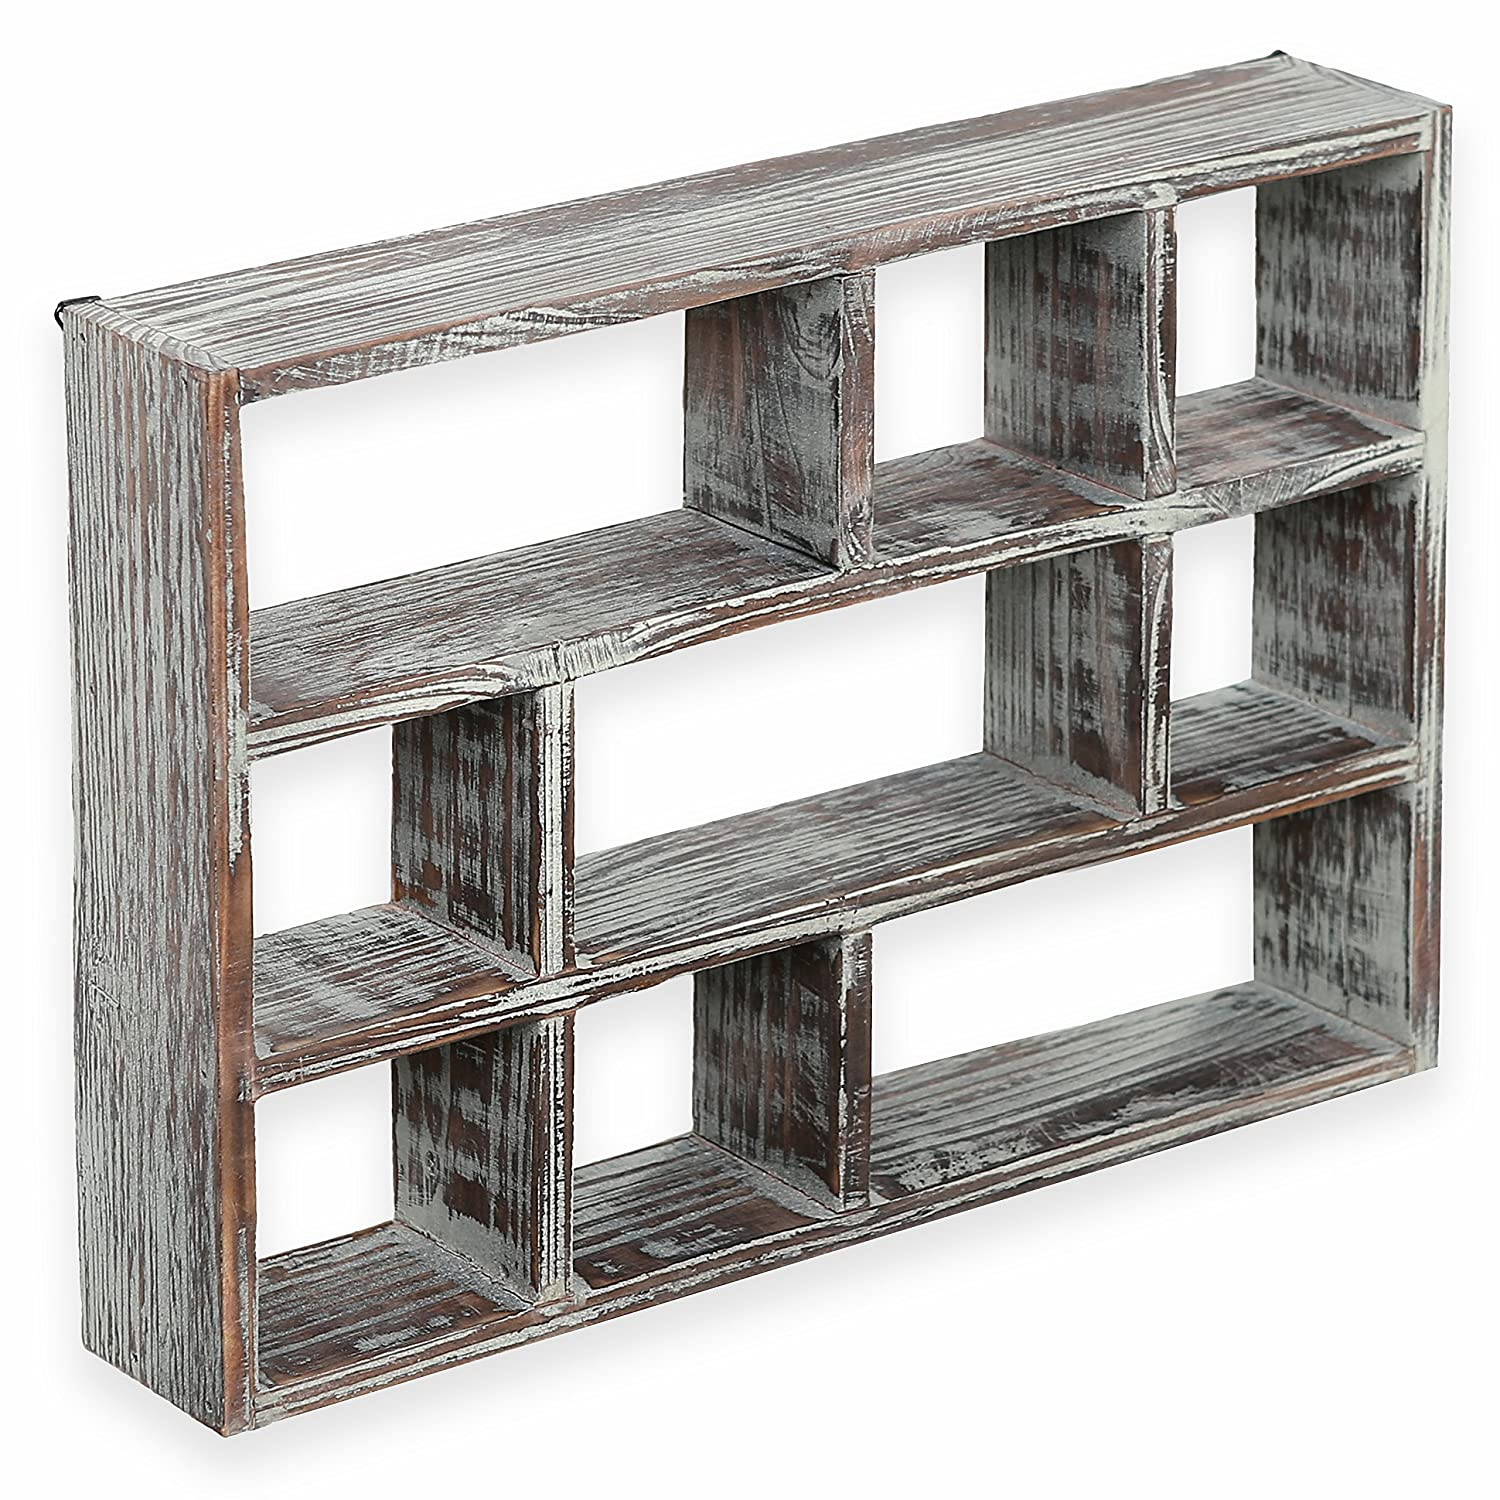 Picture frames amazon 15 inch 9 compartment rustic wooden freestanding wall mountable shadow box display shelf jeuxipadfo Images